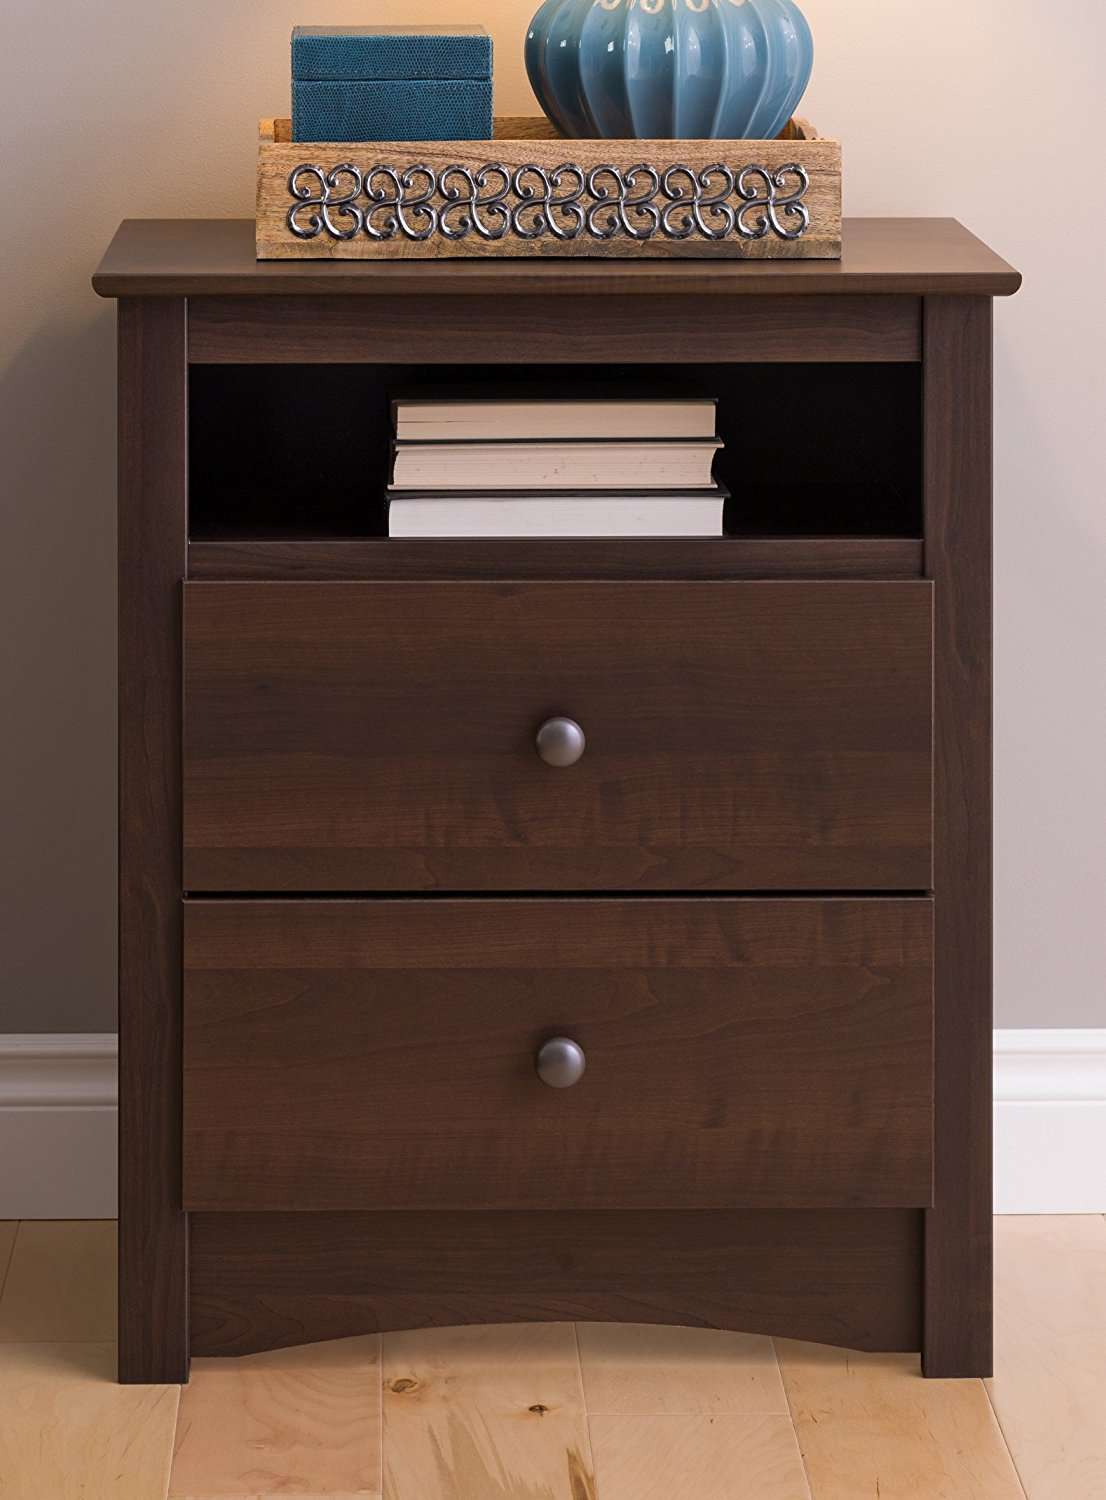 Prepac Fremont 2 Drawer Nightstand With Open Shelf In